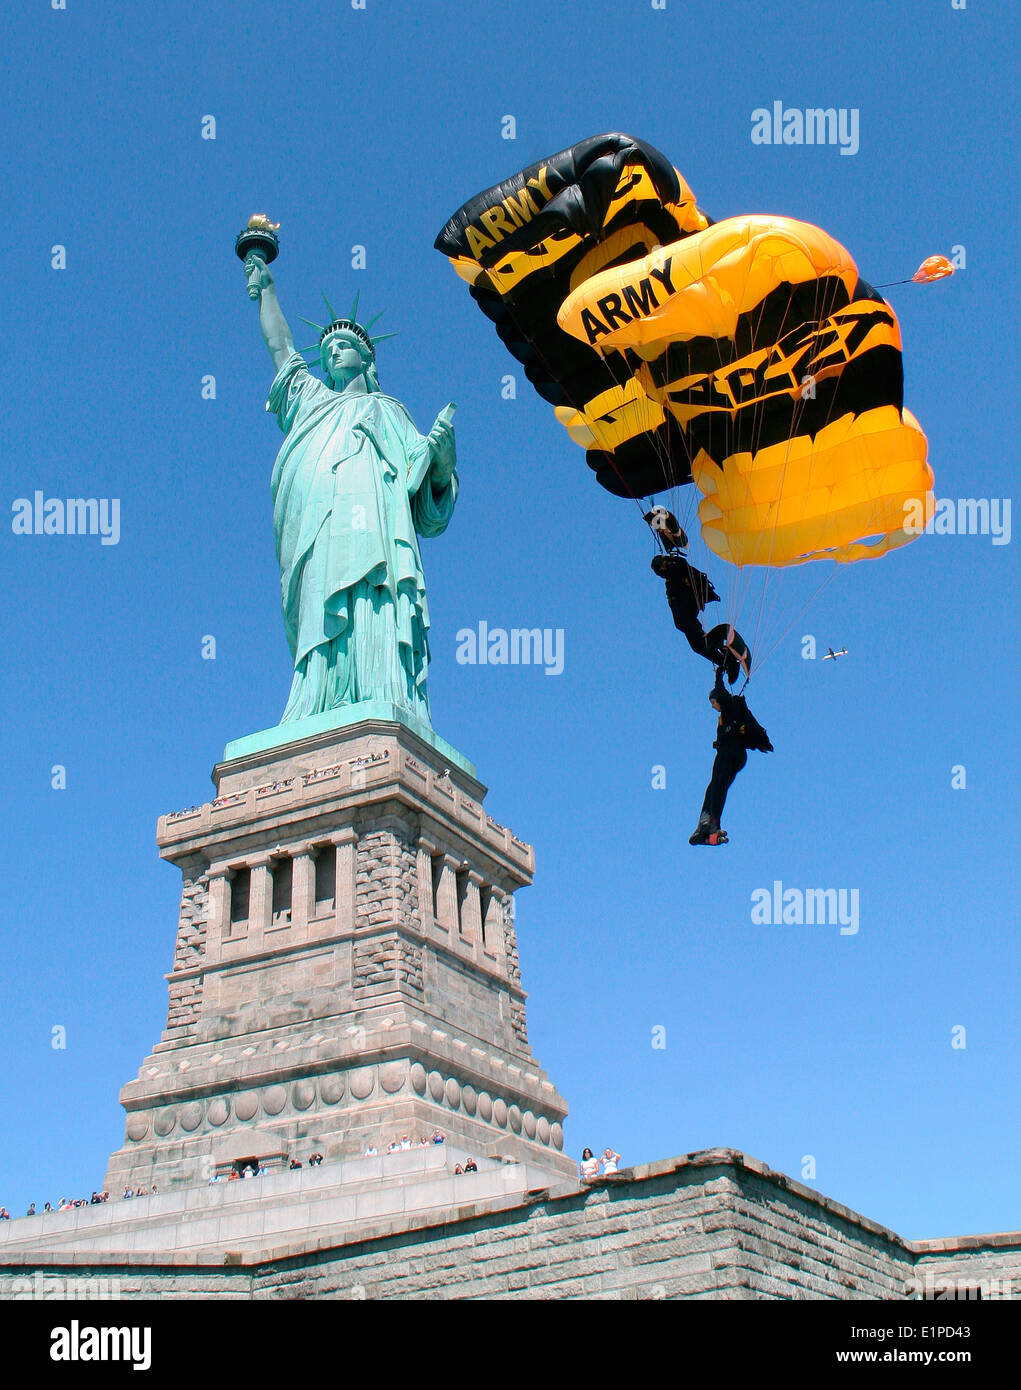 US Army Golden Knights Parachute Team land at the Statue of Liberty August 7, 2009 in New York City, NY. - Stock Image